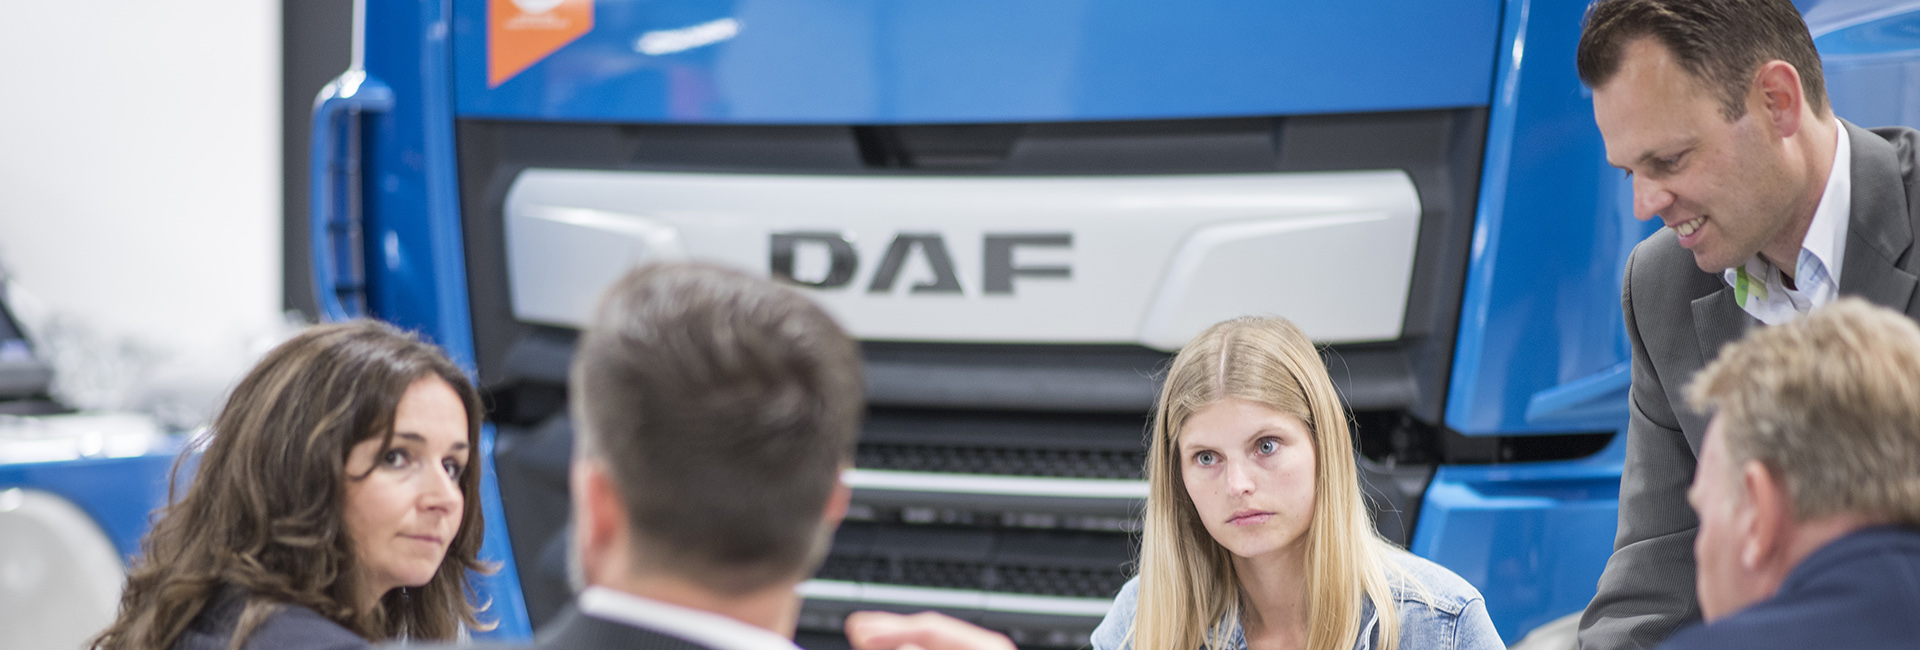 Working at DAF